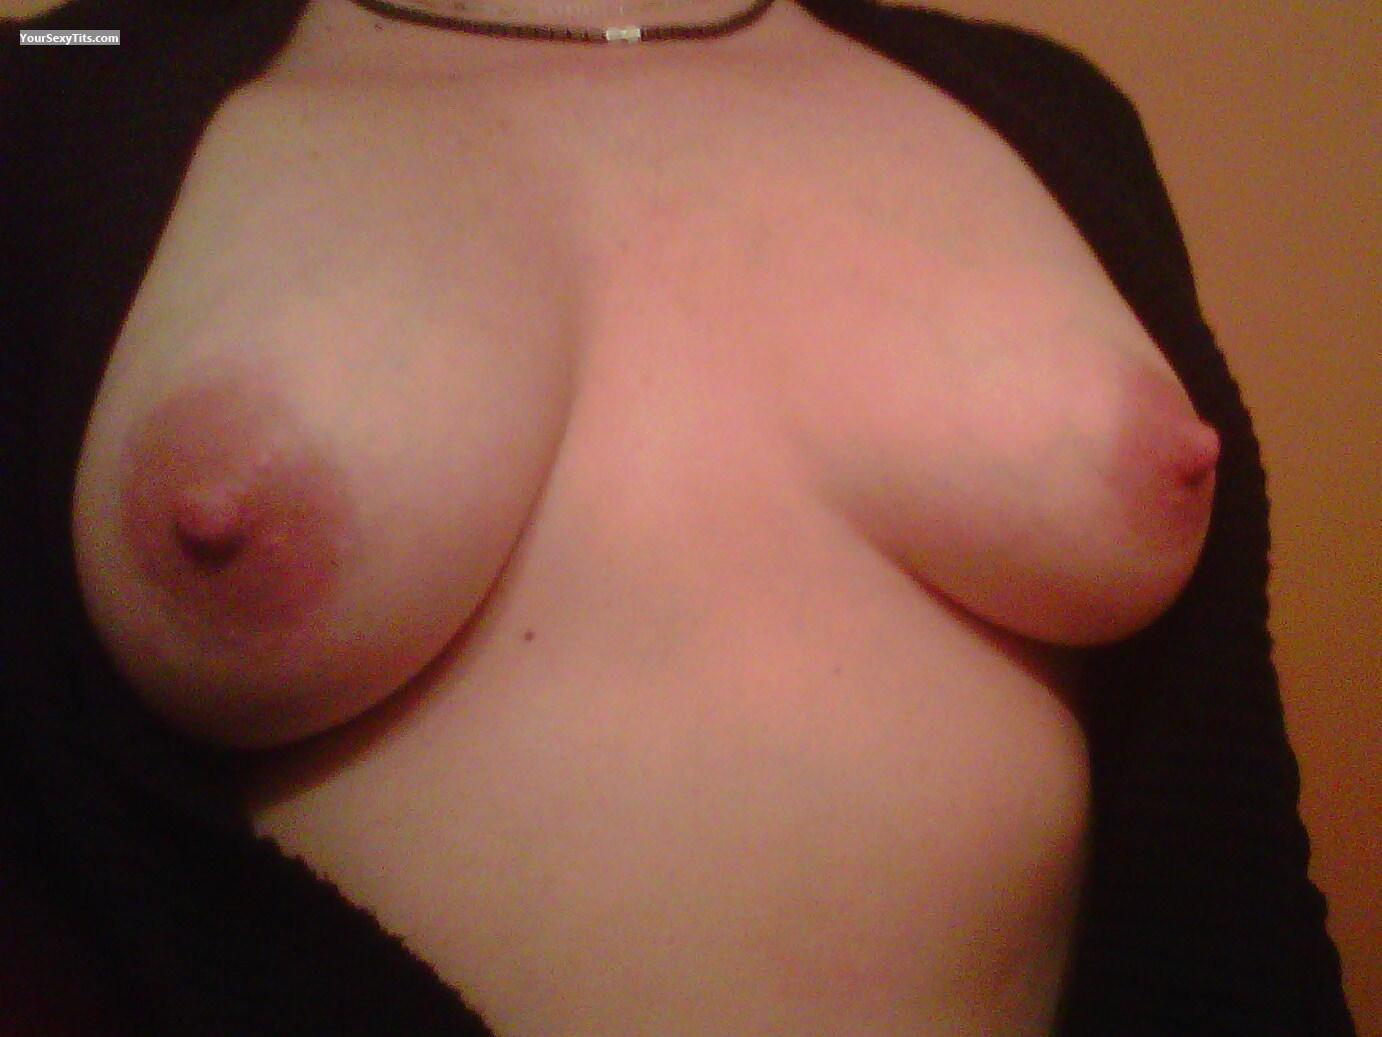 Medium Tits Hot Slut